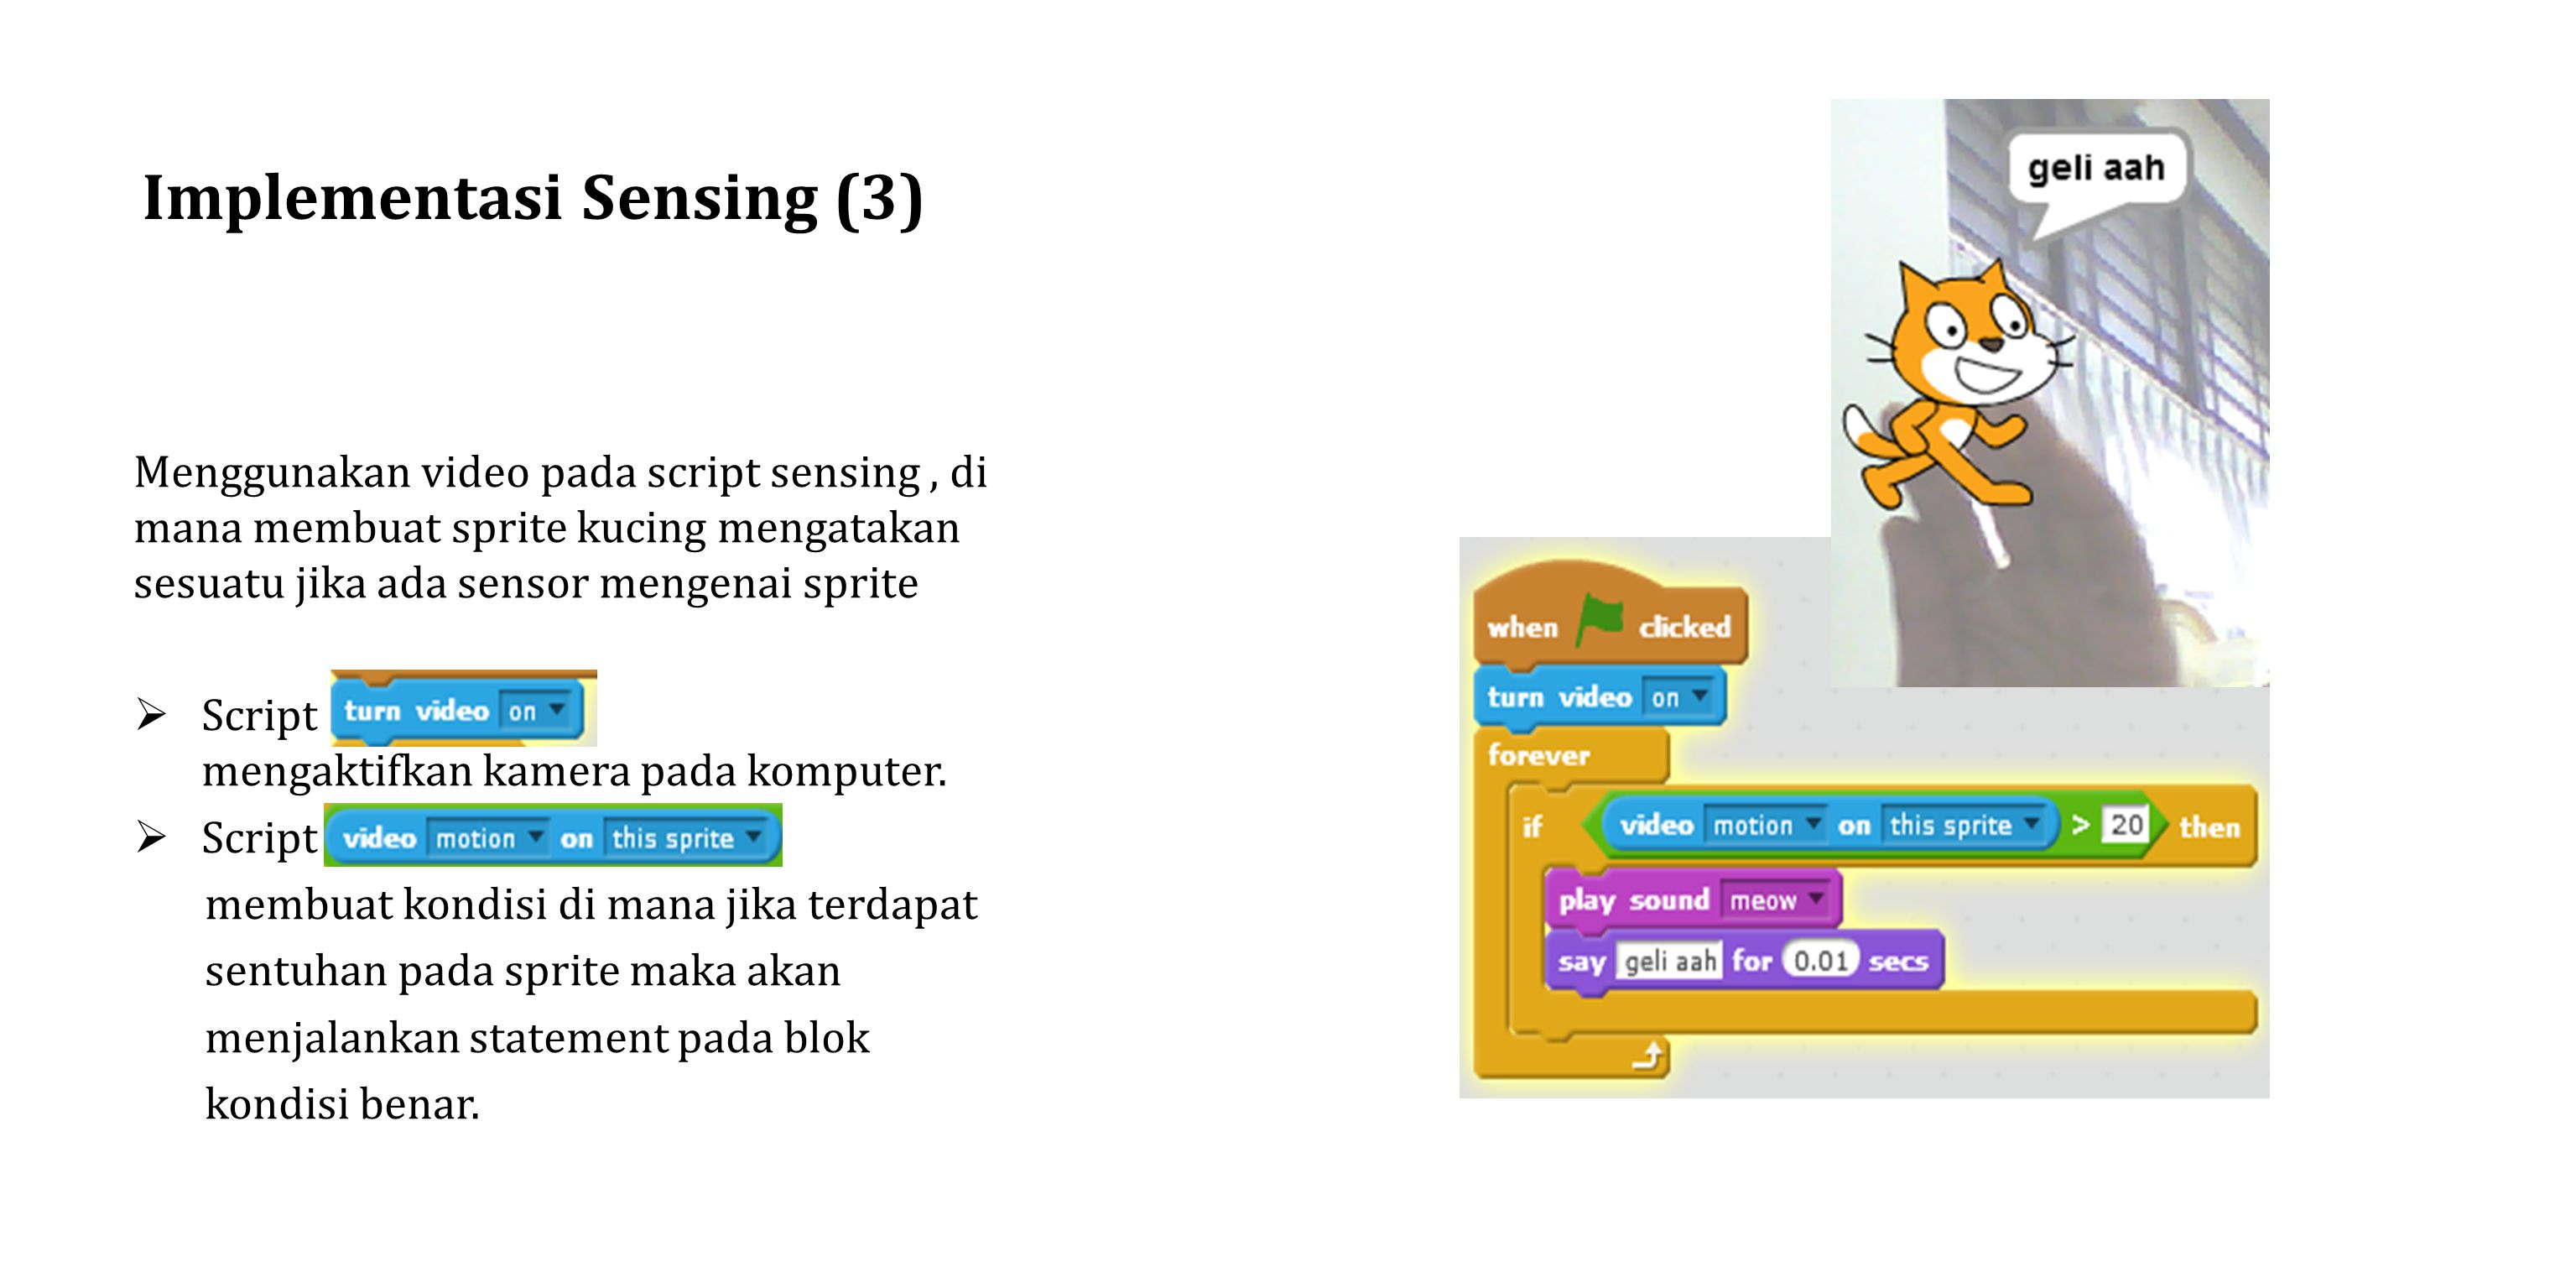 Implementasi Sensing (3)